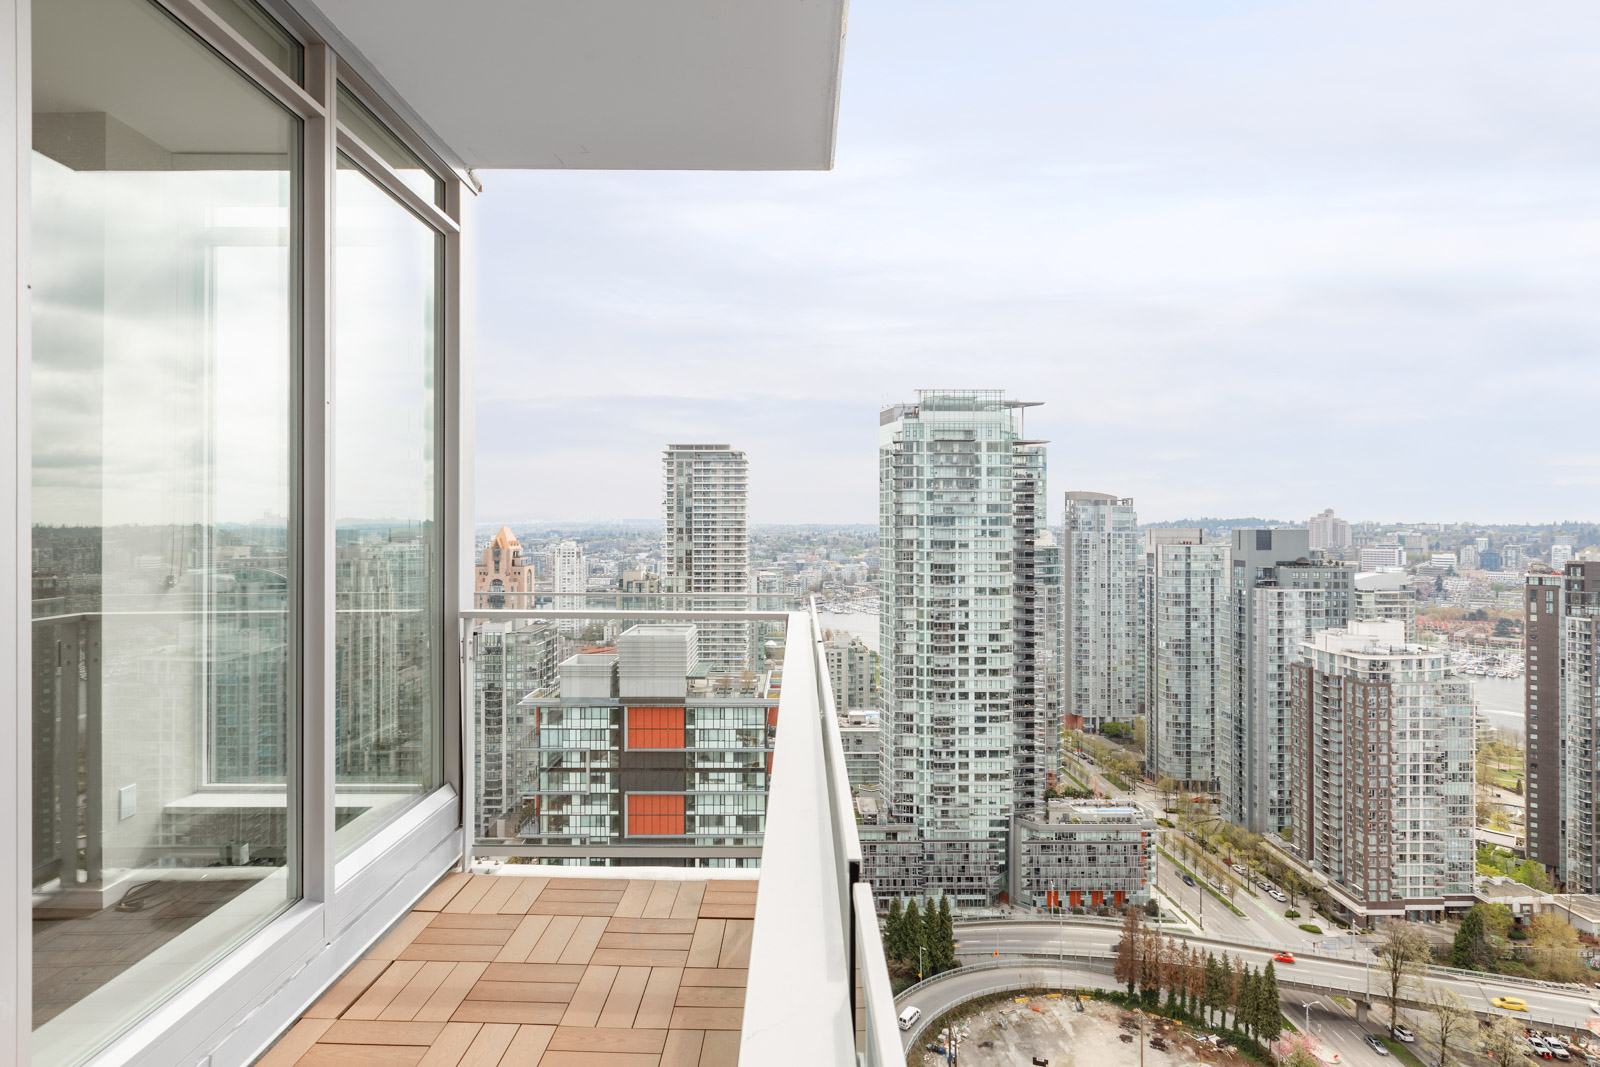 Private balcony offering views from Vancouver rental condo.